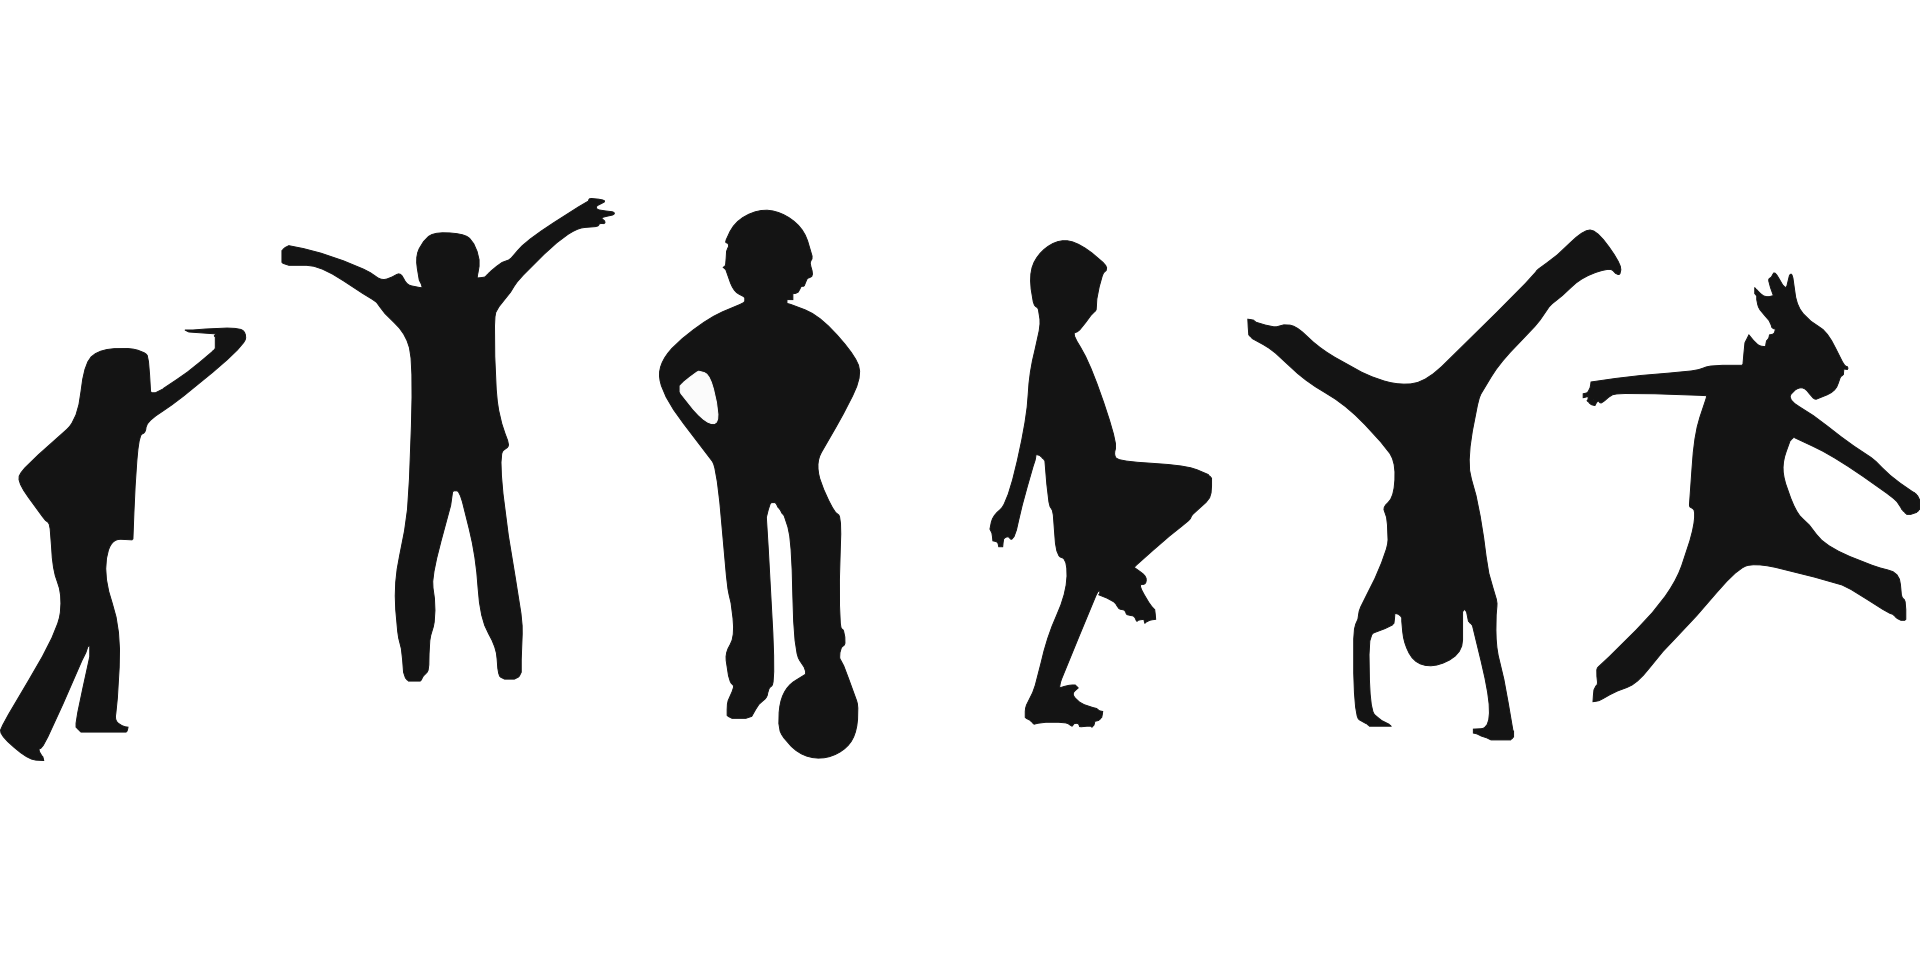 Silhouette at getdrawings com. Exercise clipart childrens